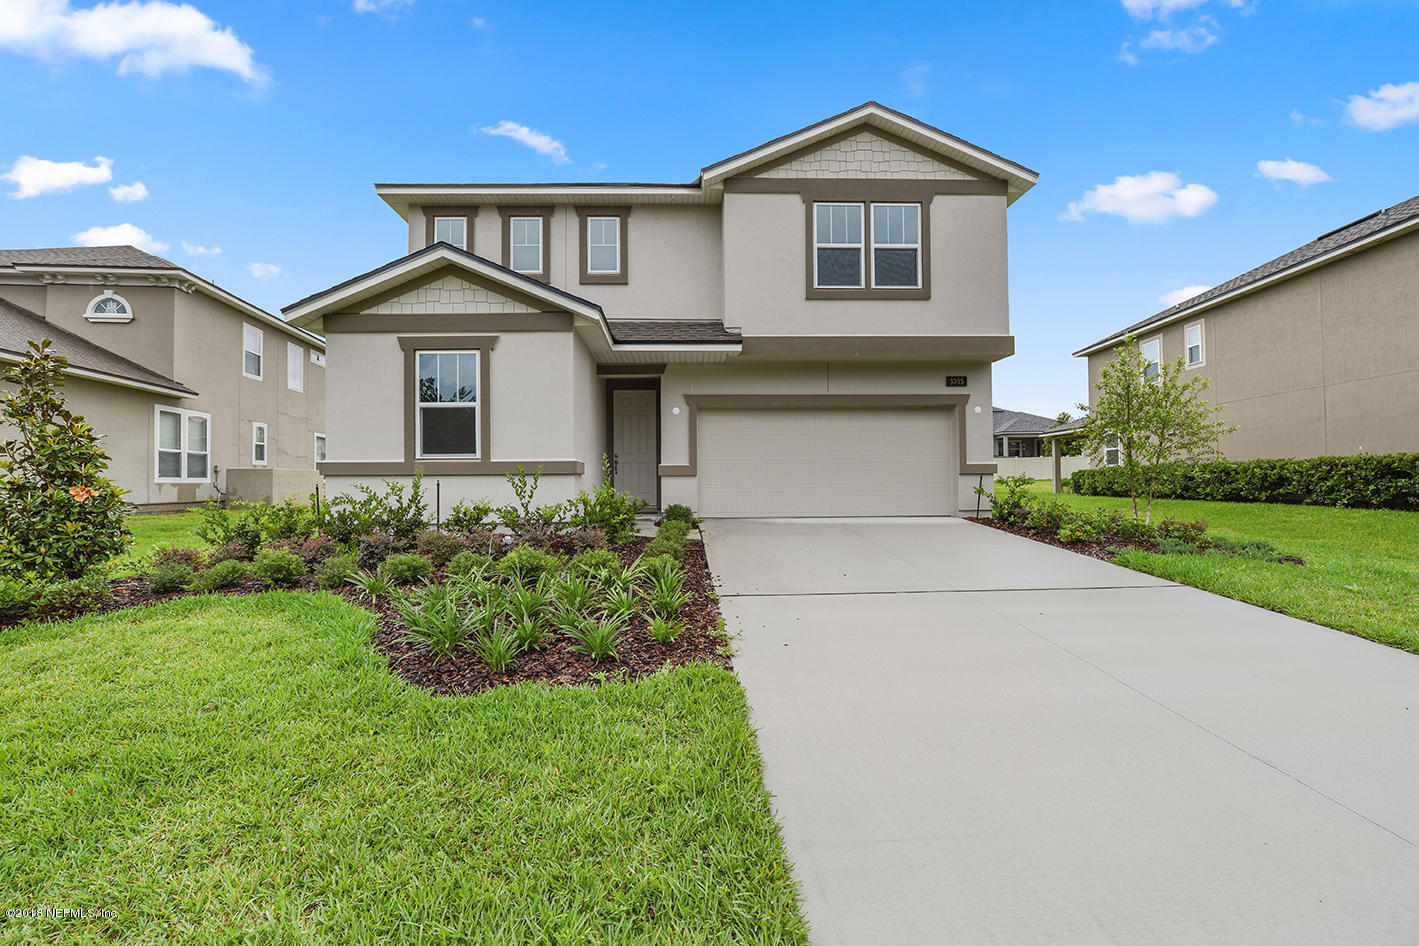 3055 PADDLE CREEK, GREEN COVE SPRINGS, FLORIDA 32043, 5 Bedrooms Bedrooms, ,3 BathroomsBathrooms,Residential - single family,For sale,PADDLE CREEK,956946